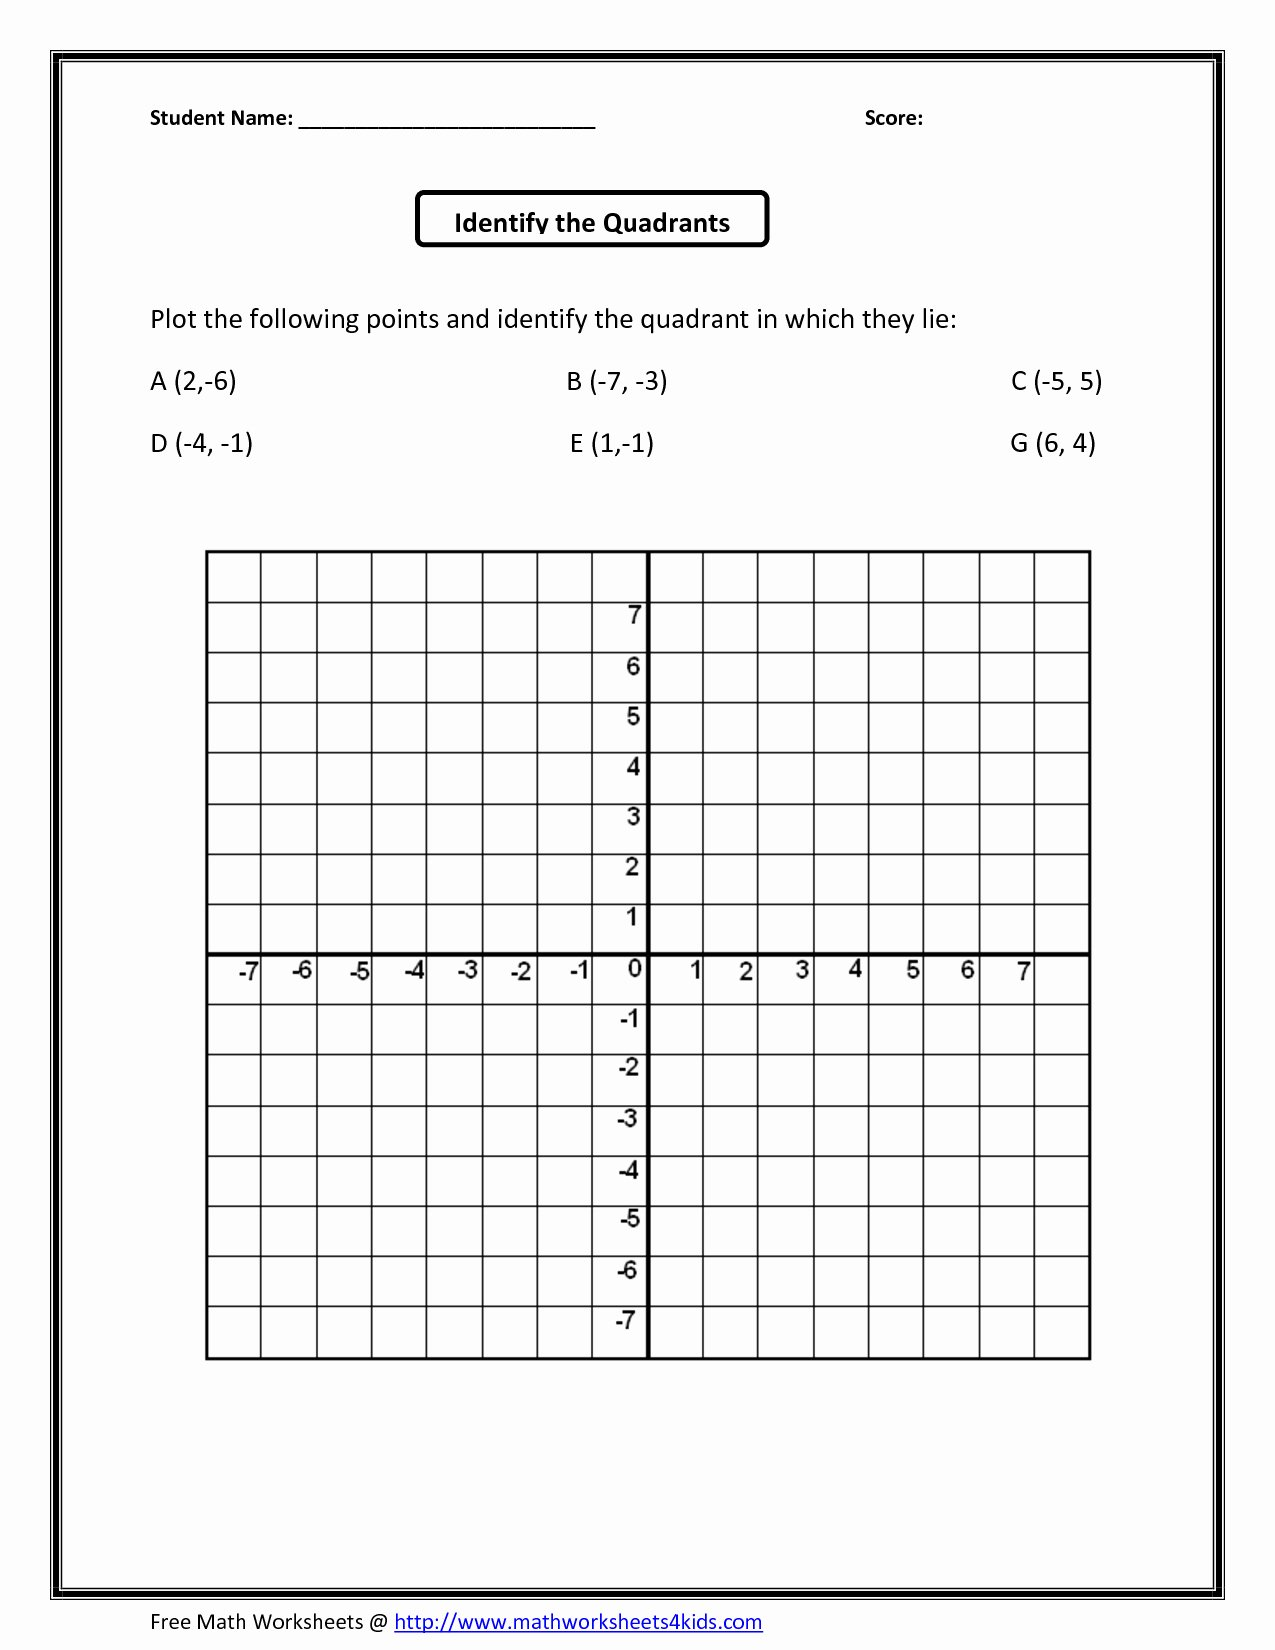 Coordinate Grid Worksheets 6th Grade top Math Coordinate Grid Worksheets